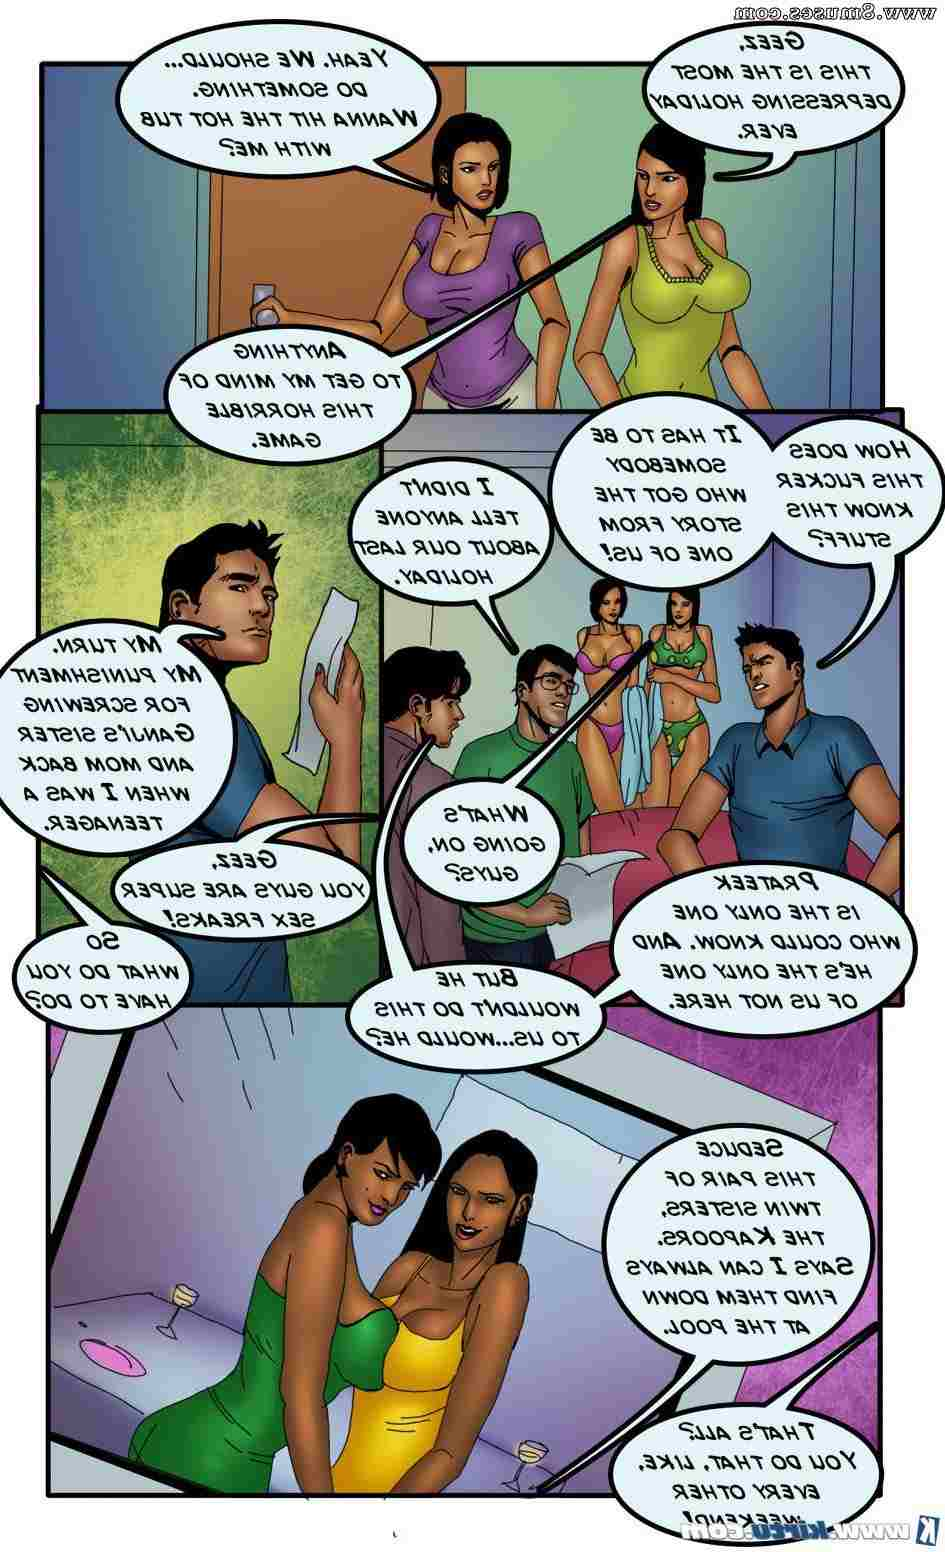 Kirtu_com-Comics/Saath-Kahaniya/Saath-Kahaniya-Episode-11-Double-or-Nothing Saath_Kahaniya_-_Episode_11_-_Double_or_Nothing__8muses_-_Sex_and_Porn_Comics_4.jpg